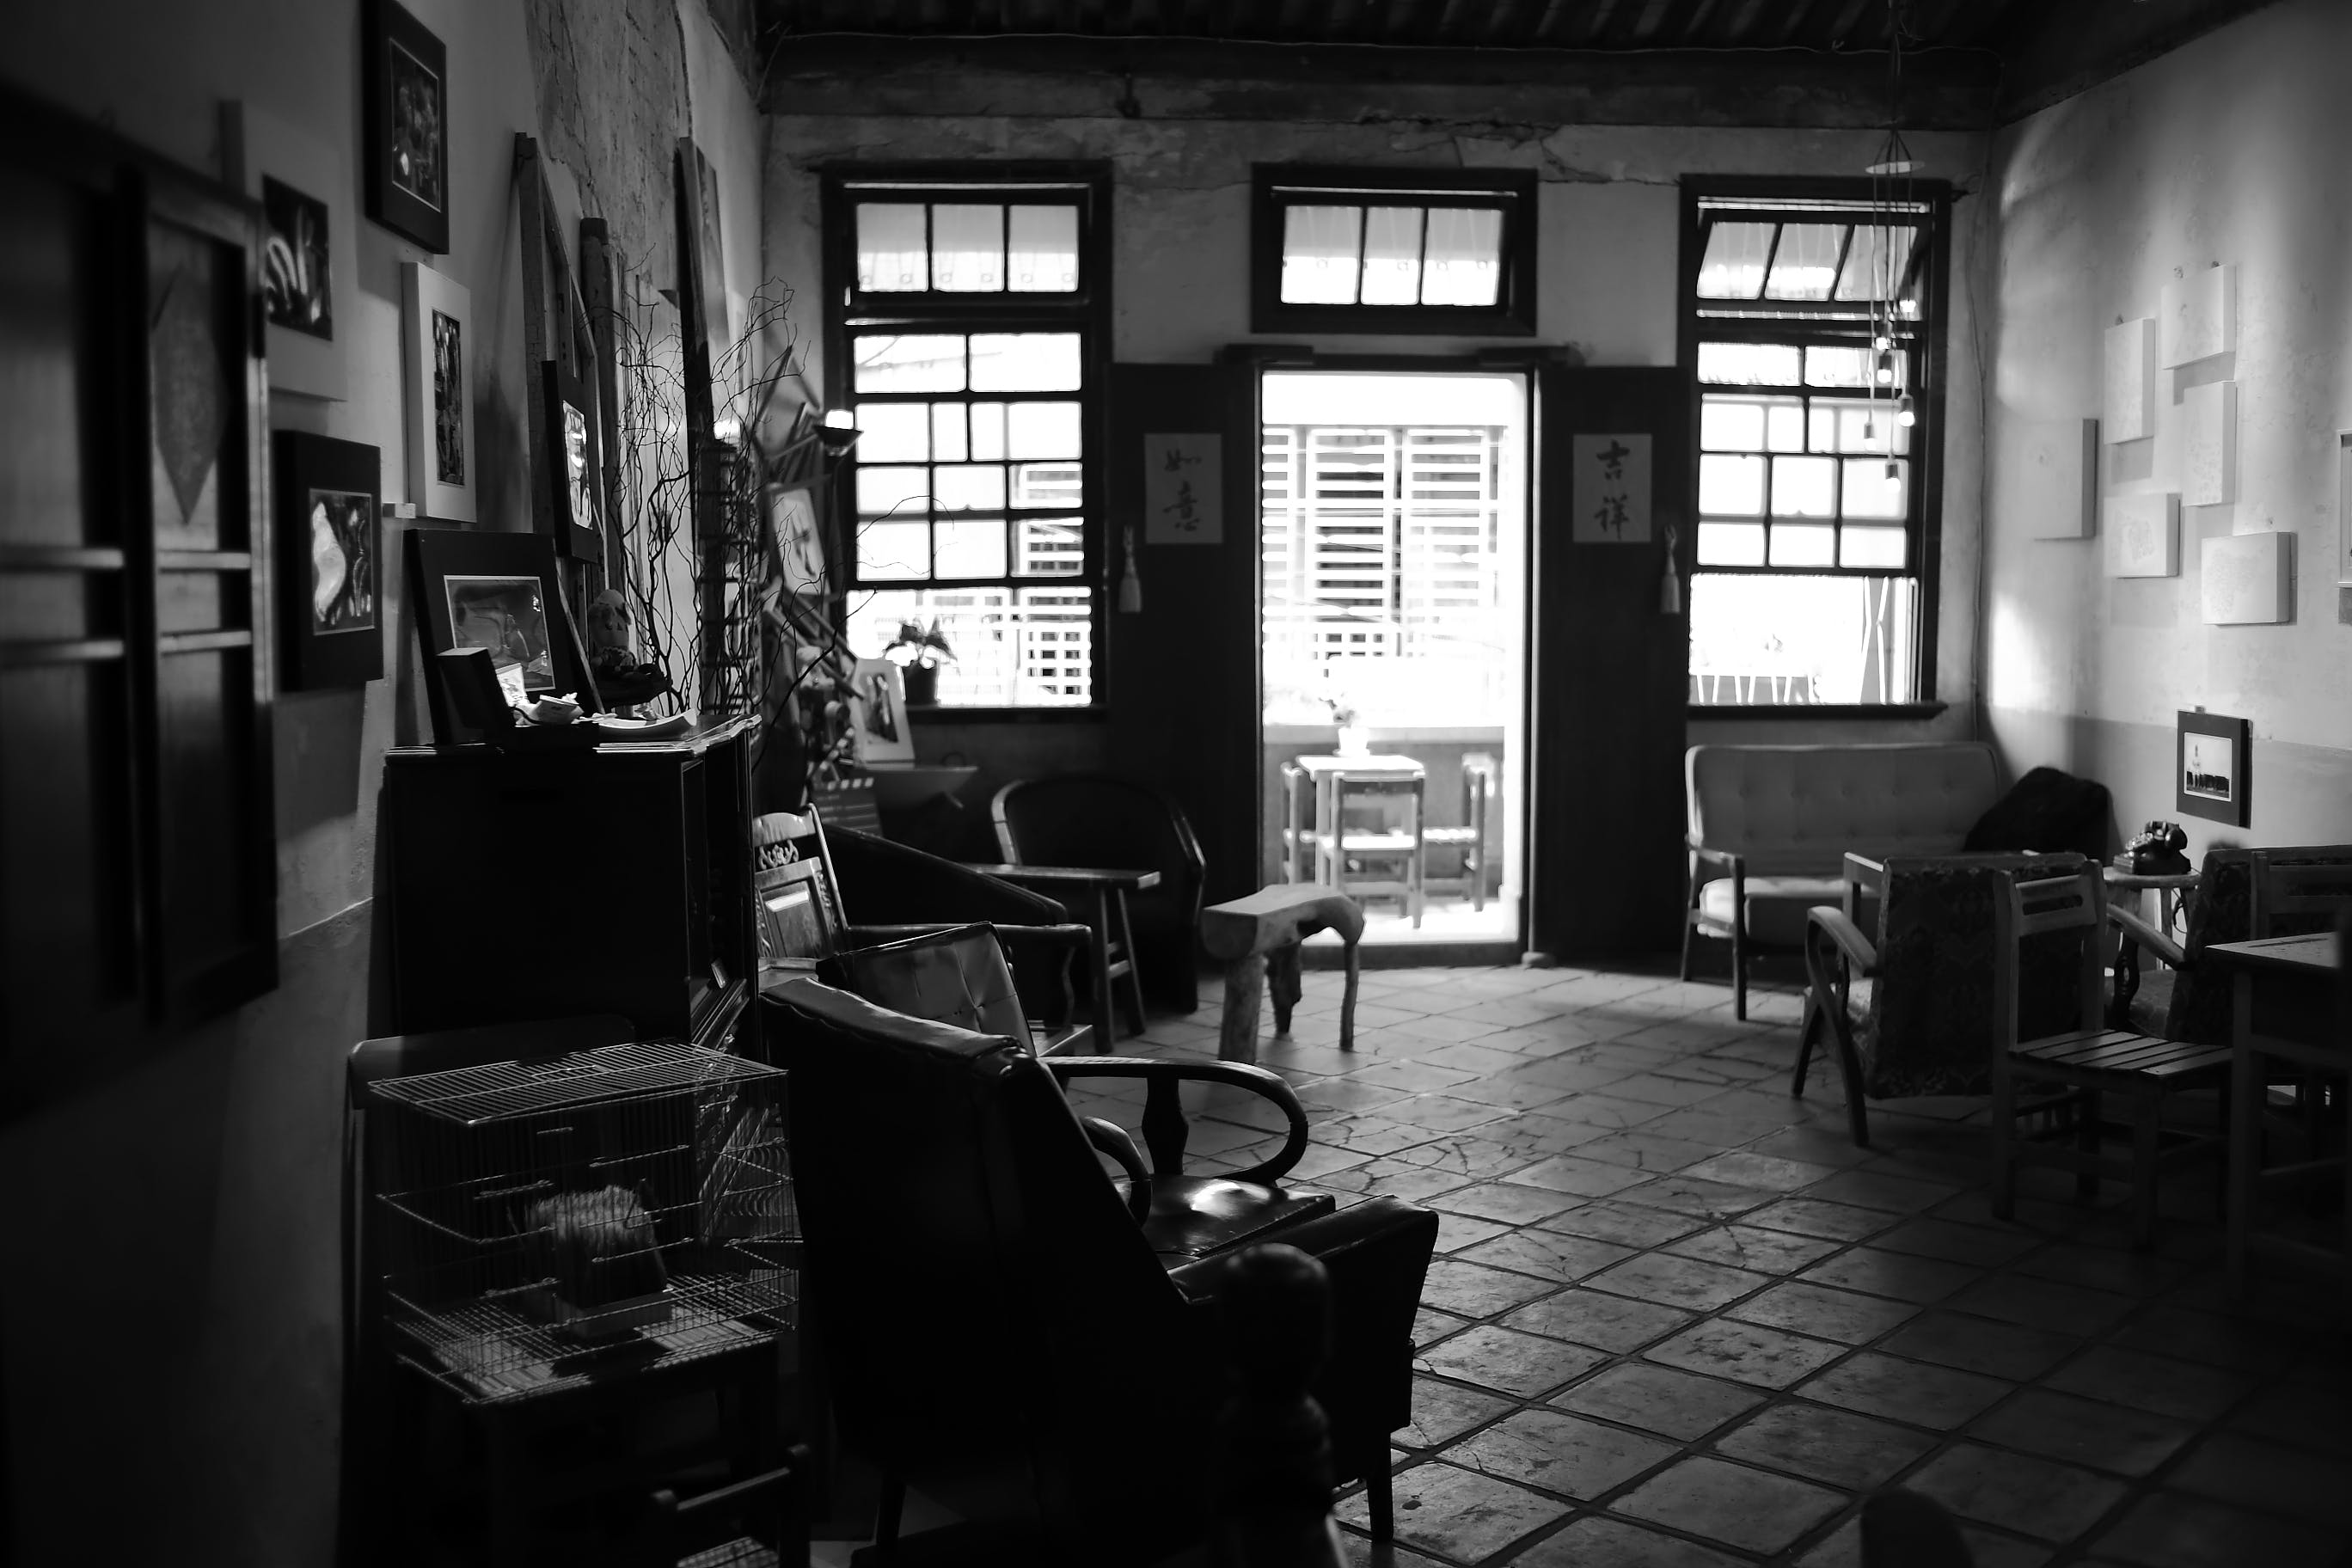 Grayscale Photography of Inside the Room